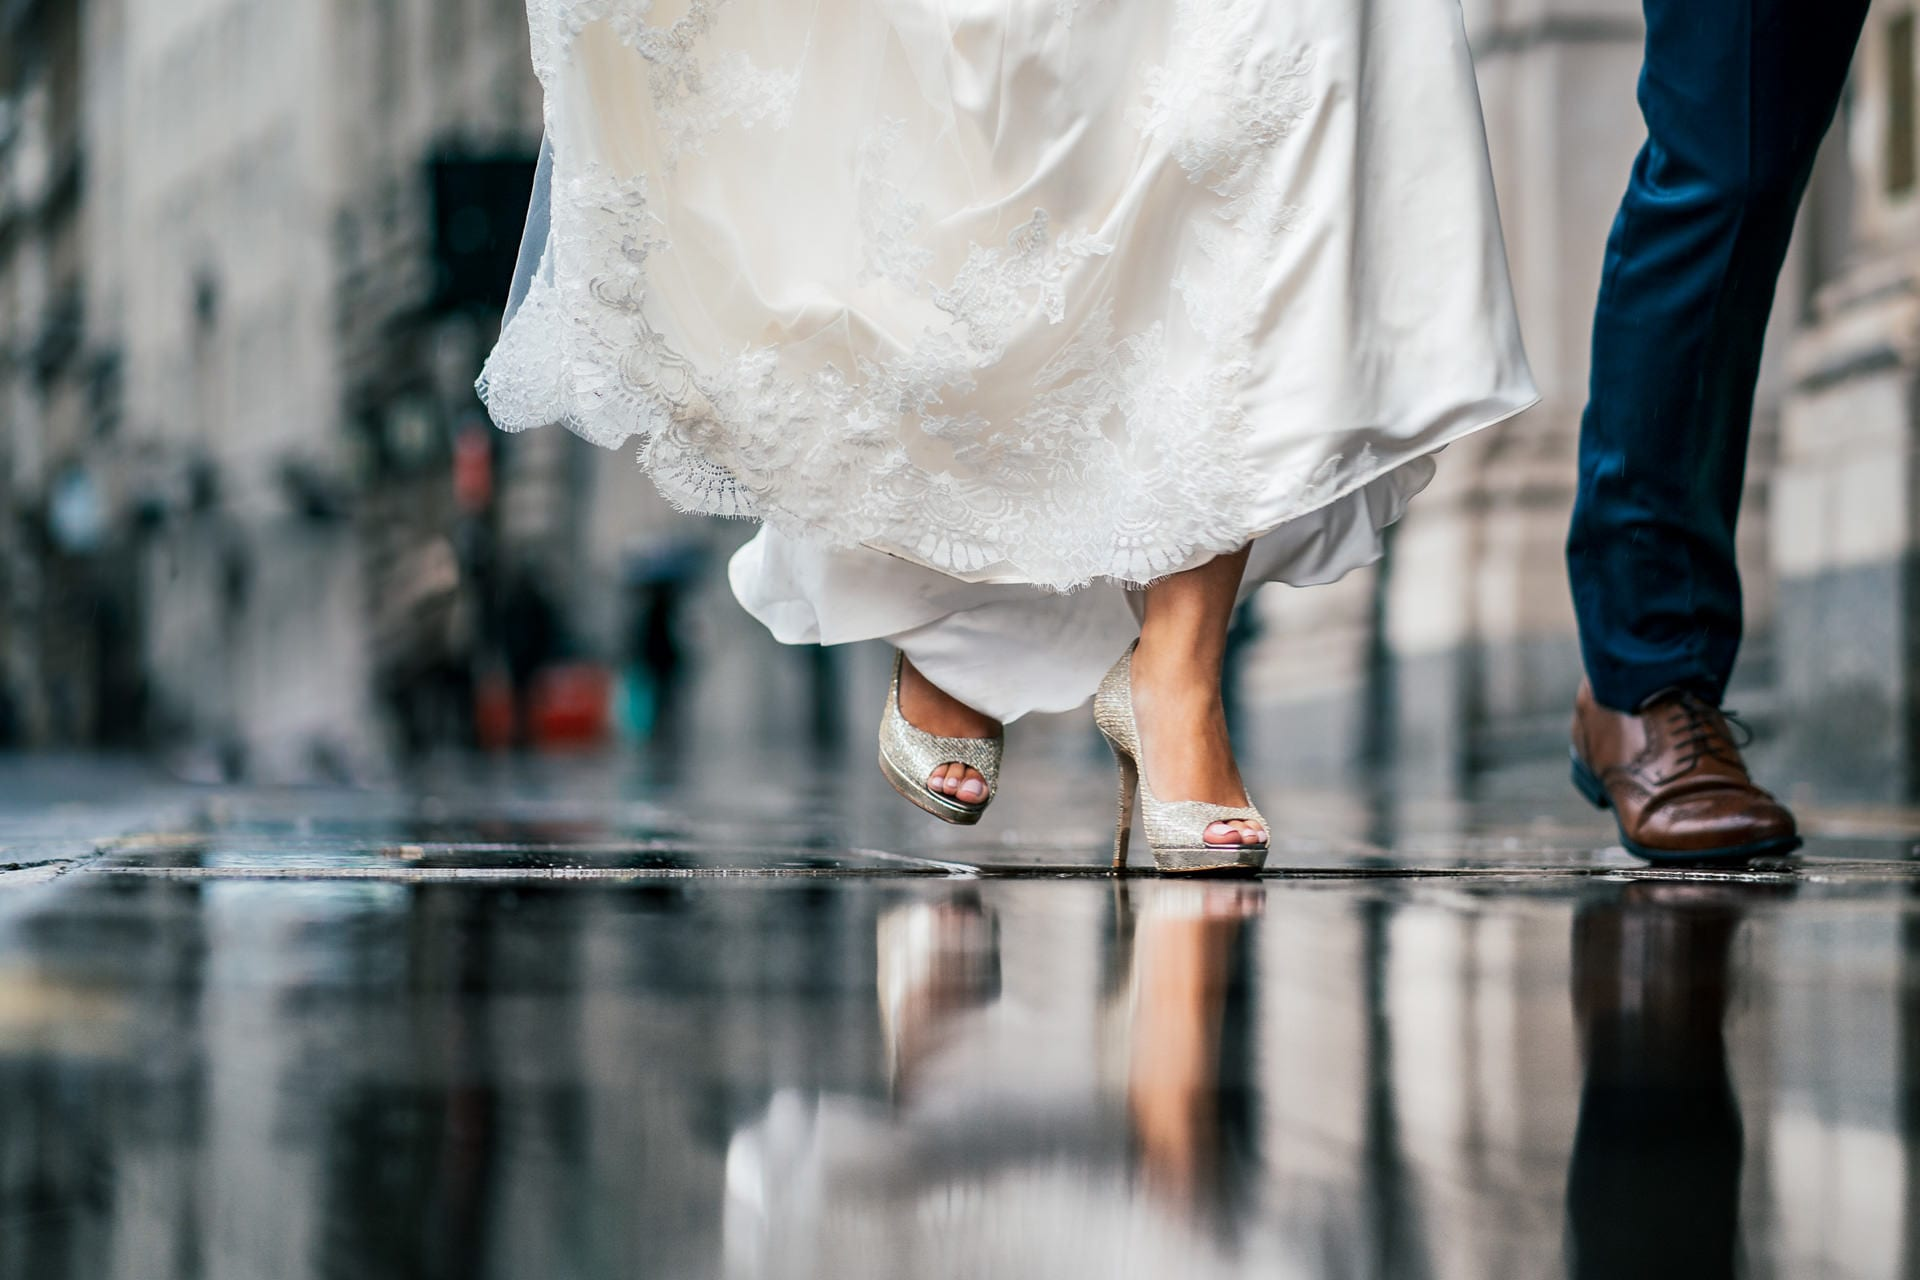 Trinity House Wedding Photographer Bride's wedding shoes on rainy streets at a wedding at 1 Lombard Street in London